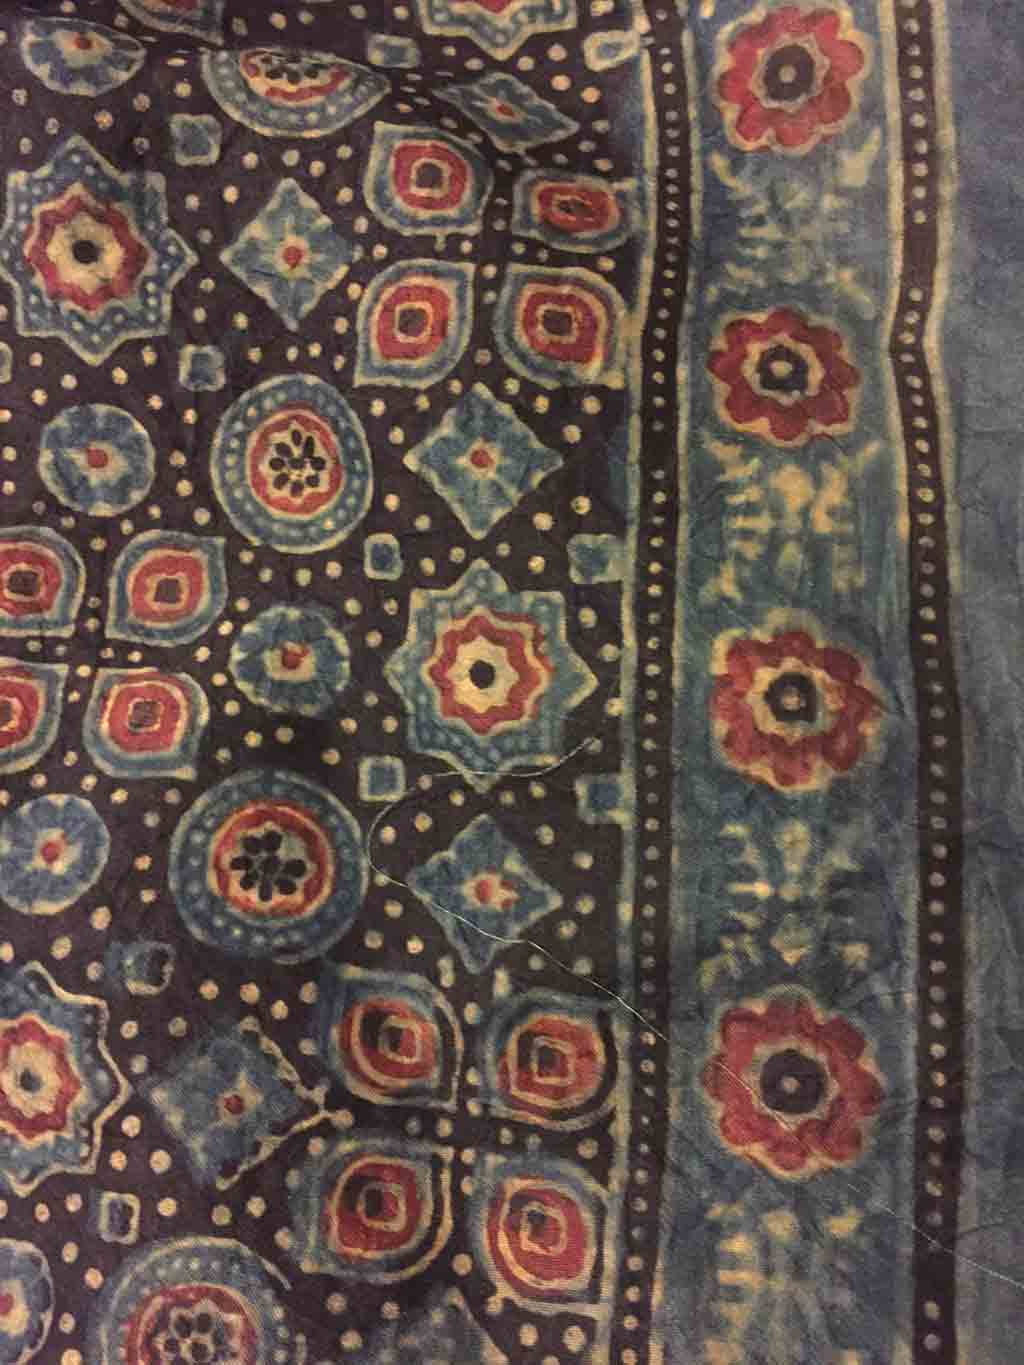 close-up of small flowers and detail on rug